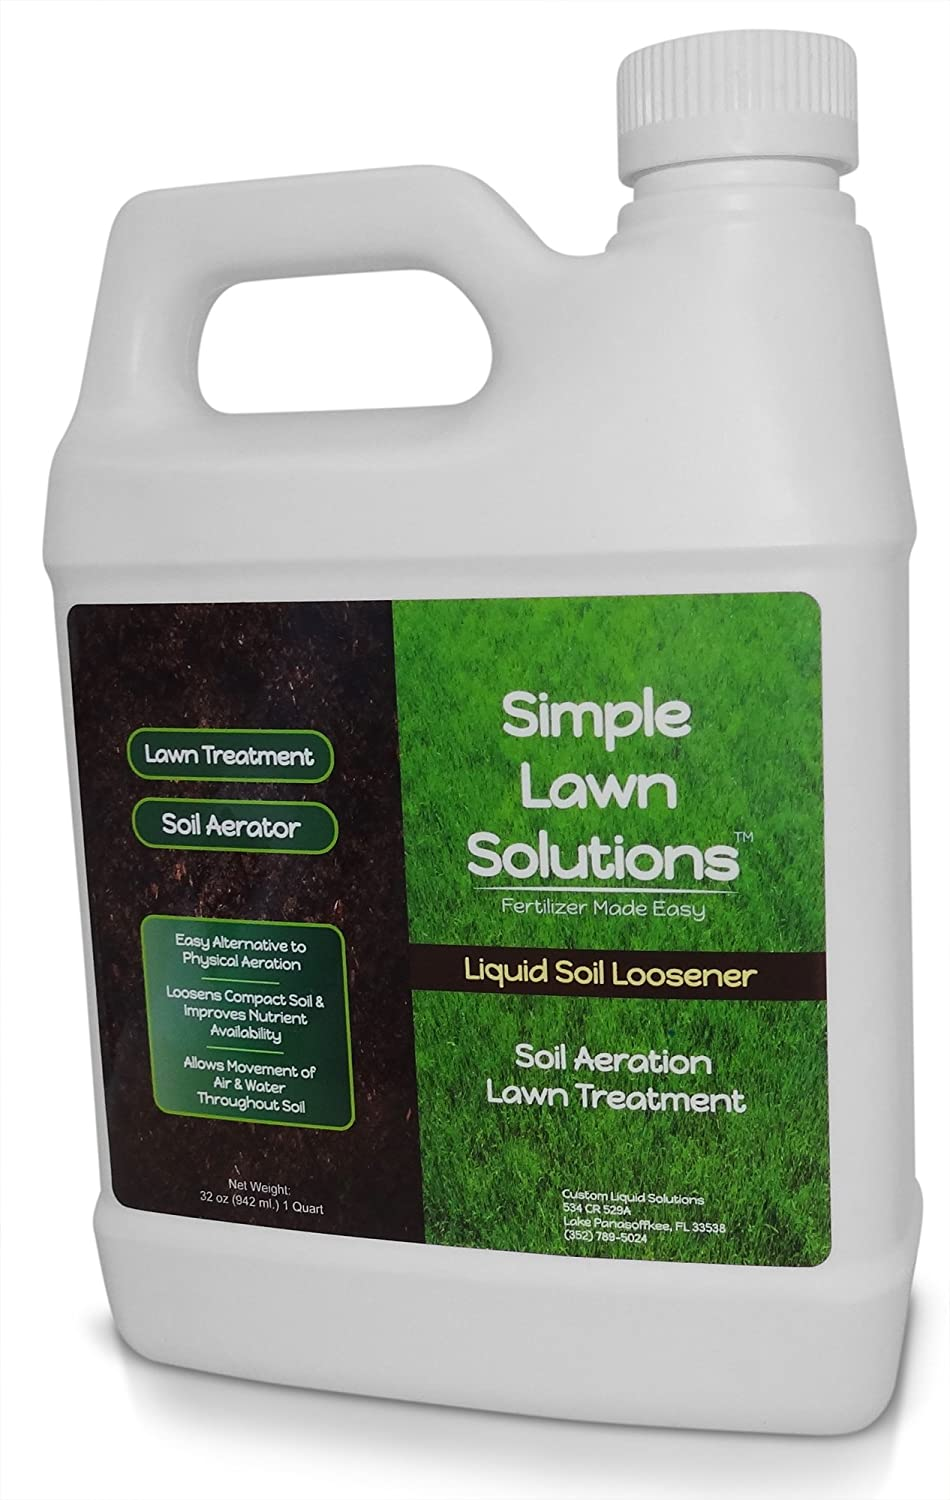 Liquid Aerating Soil Loosener- Aerator Soil Conditioner- No Mechanical or  Core Aeration- Simple Lawn Solutions- Any Grass Type, All Season- Great for